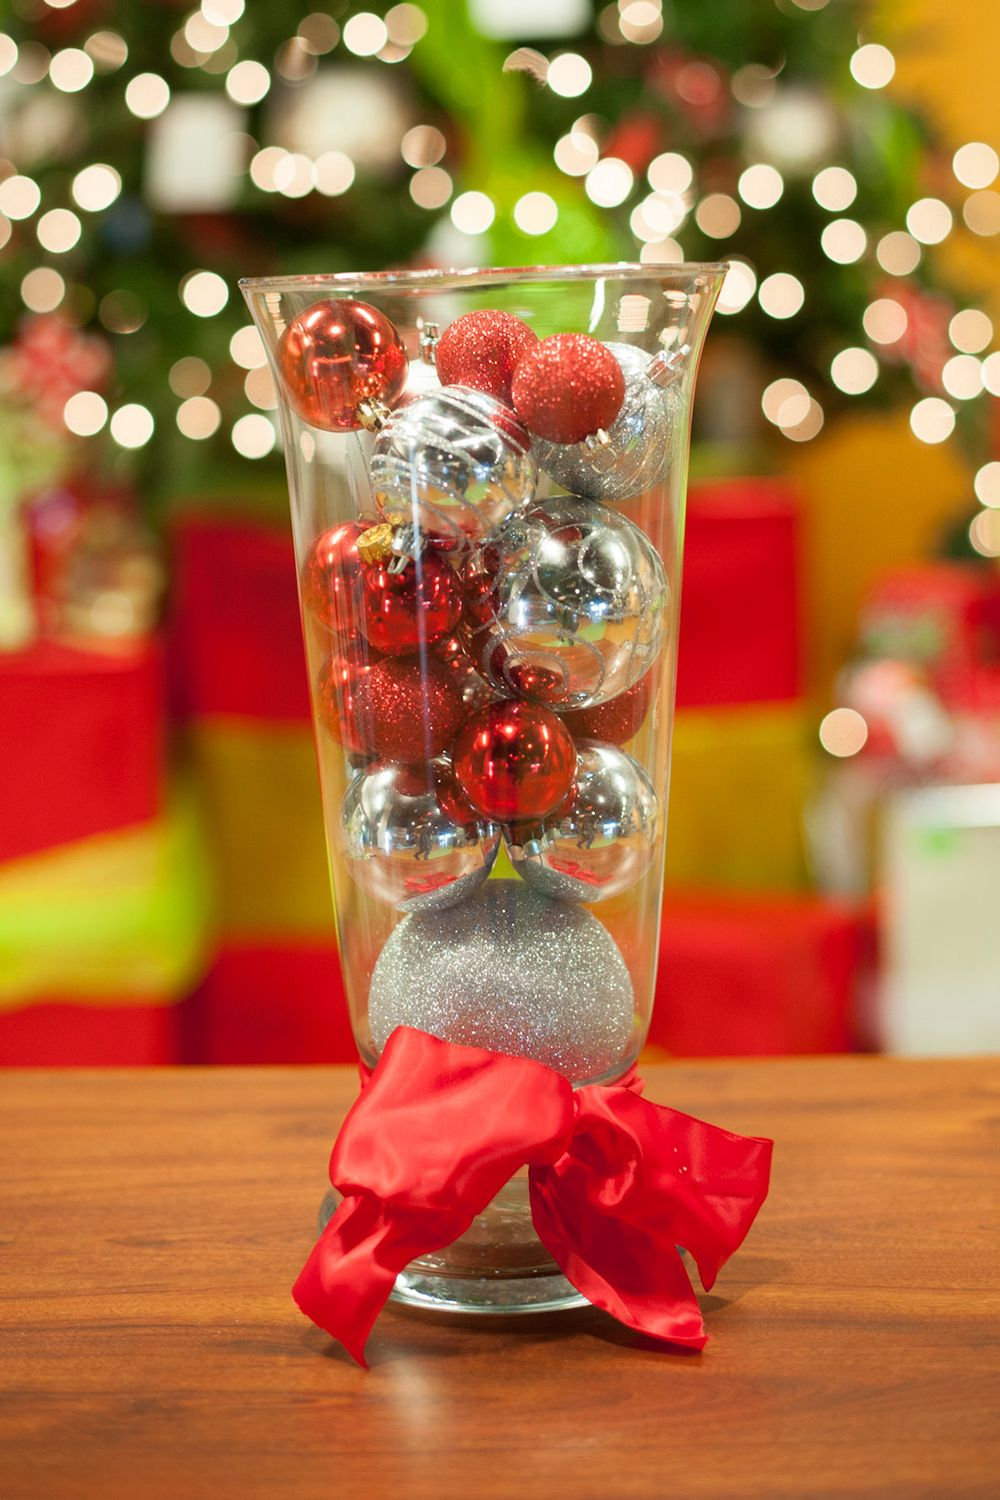 Christmas Centerpieces Ideas Furniture And Accessoriesminimalist Cheap Simple Yet Beautiful